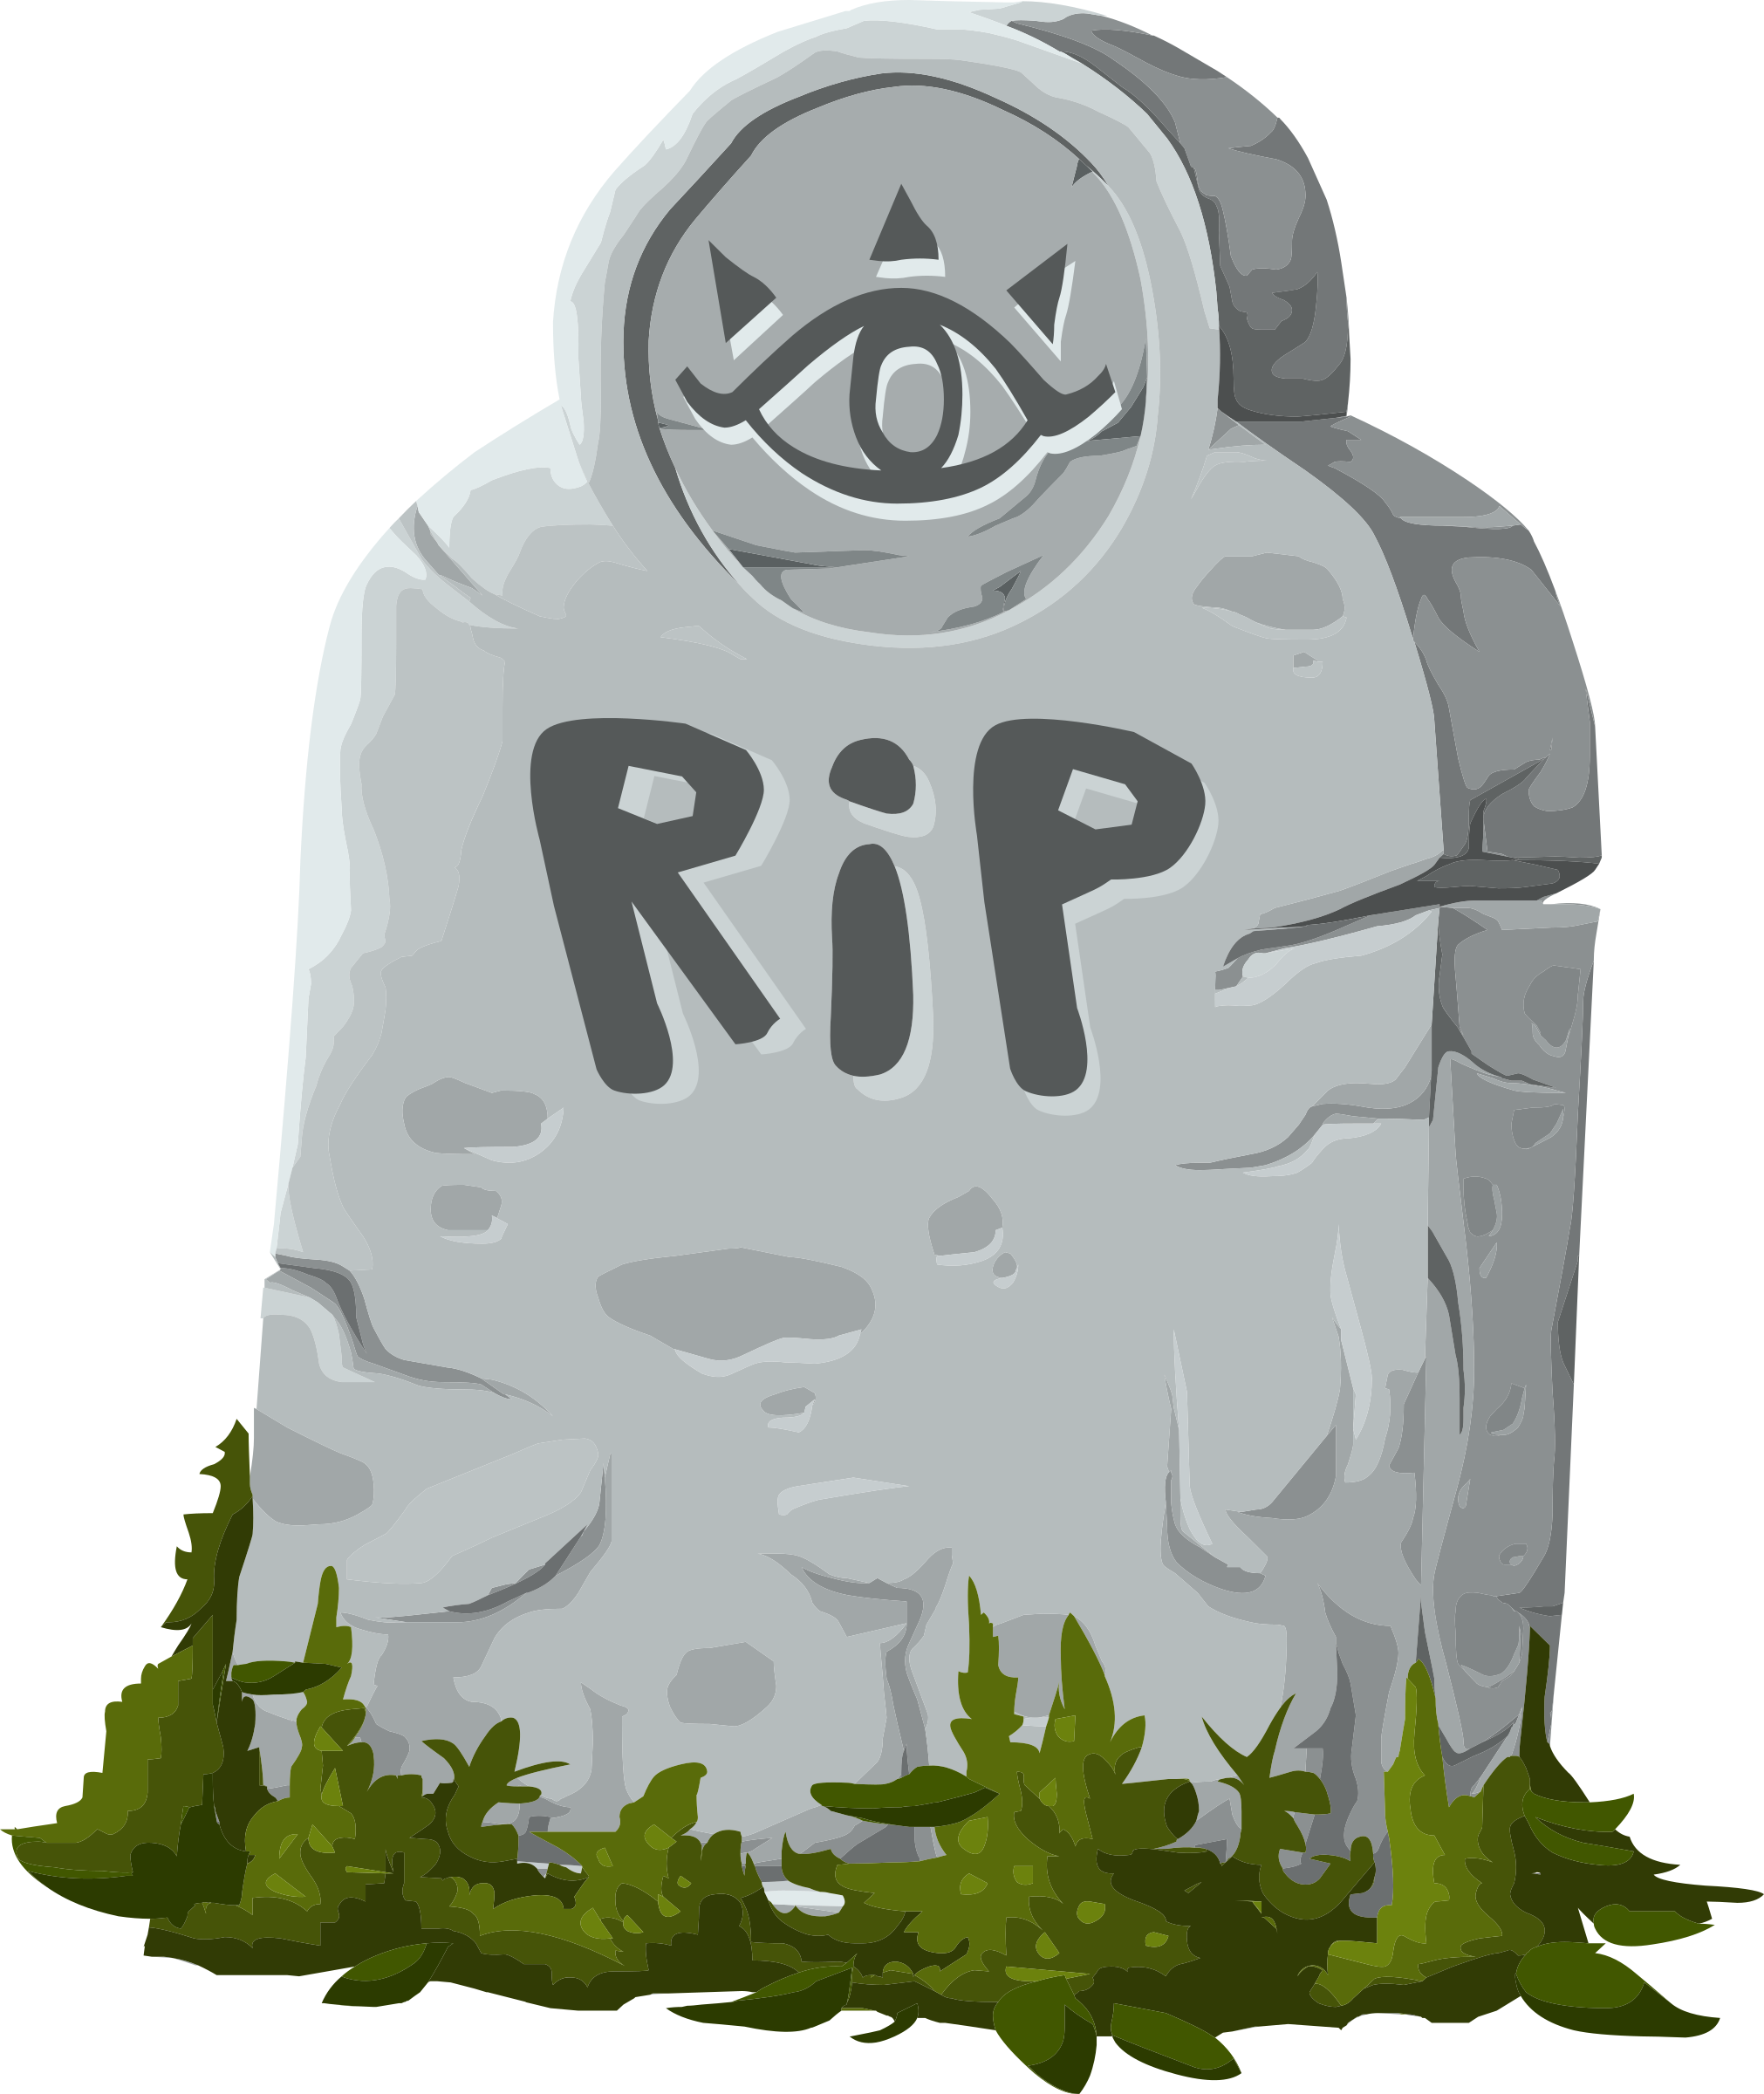 Gravestone Png Image Gravestone Cemetery Png Images